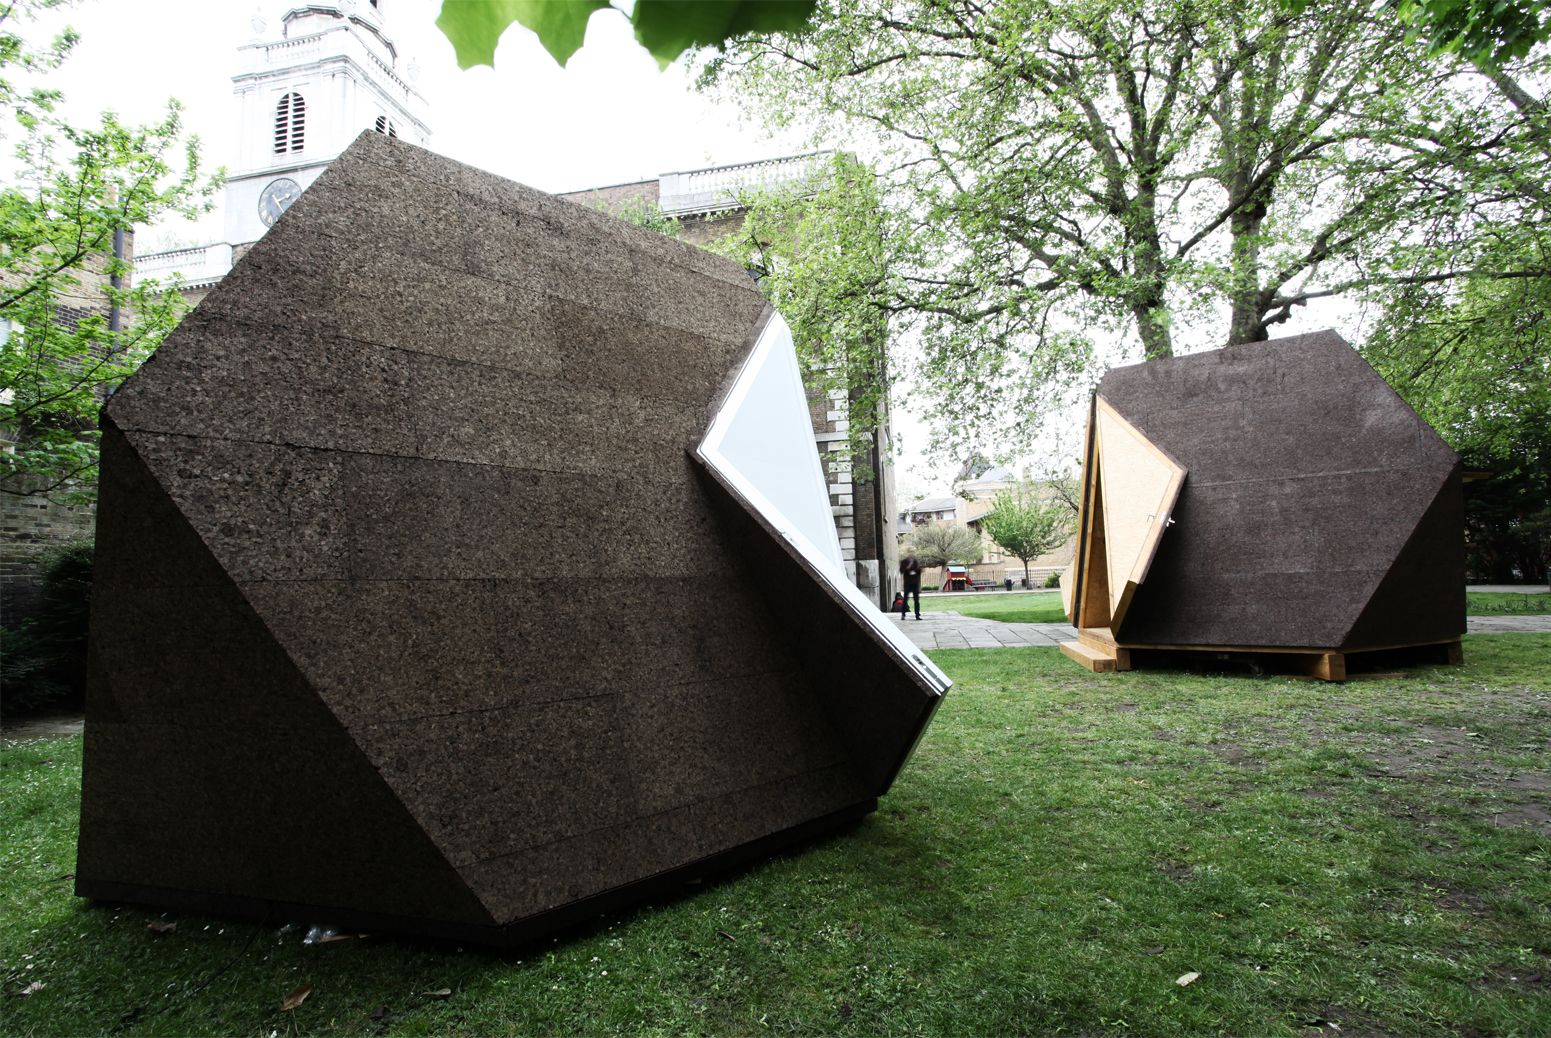 Great Cork Clad Tetra Shed® Shell And Kiosk At Clerkenwell Design Week 2013